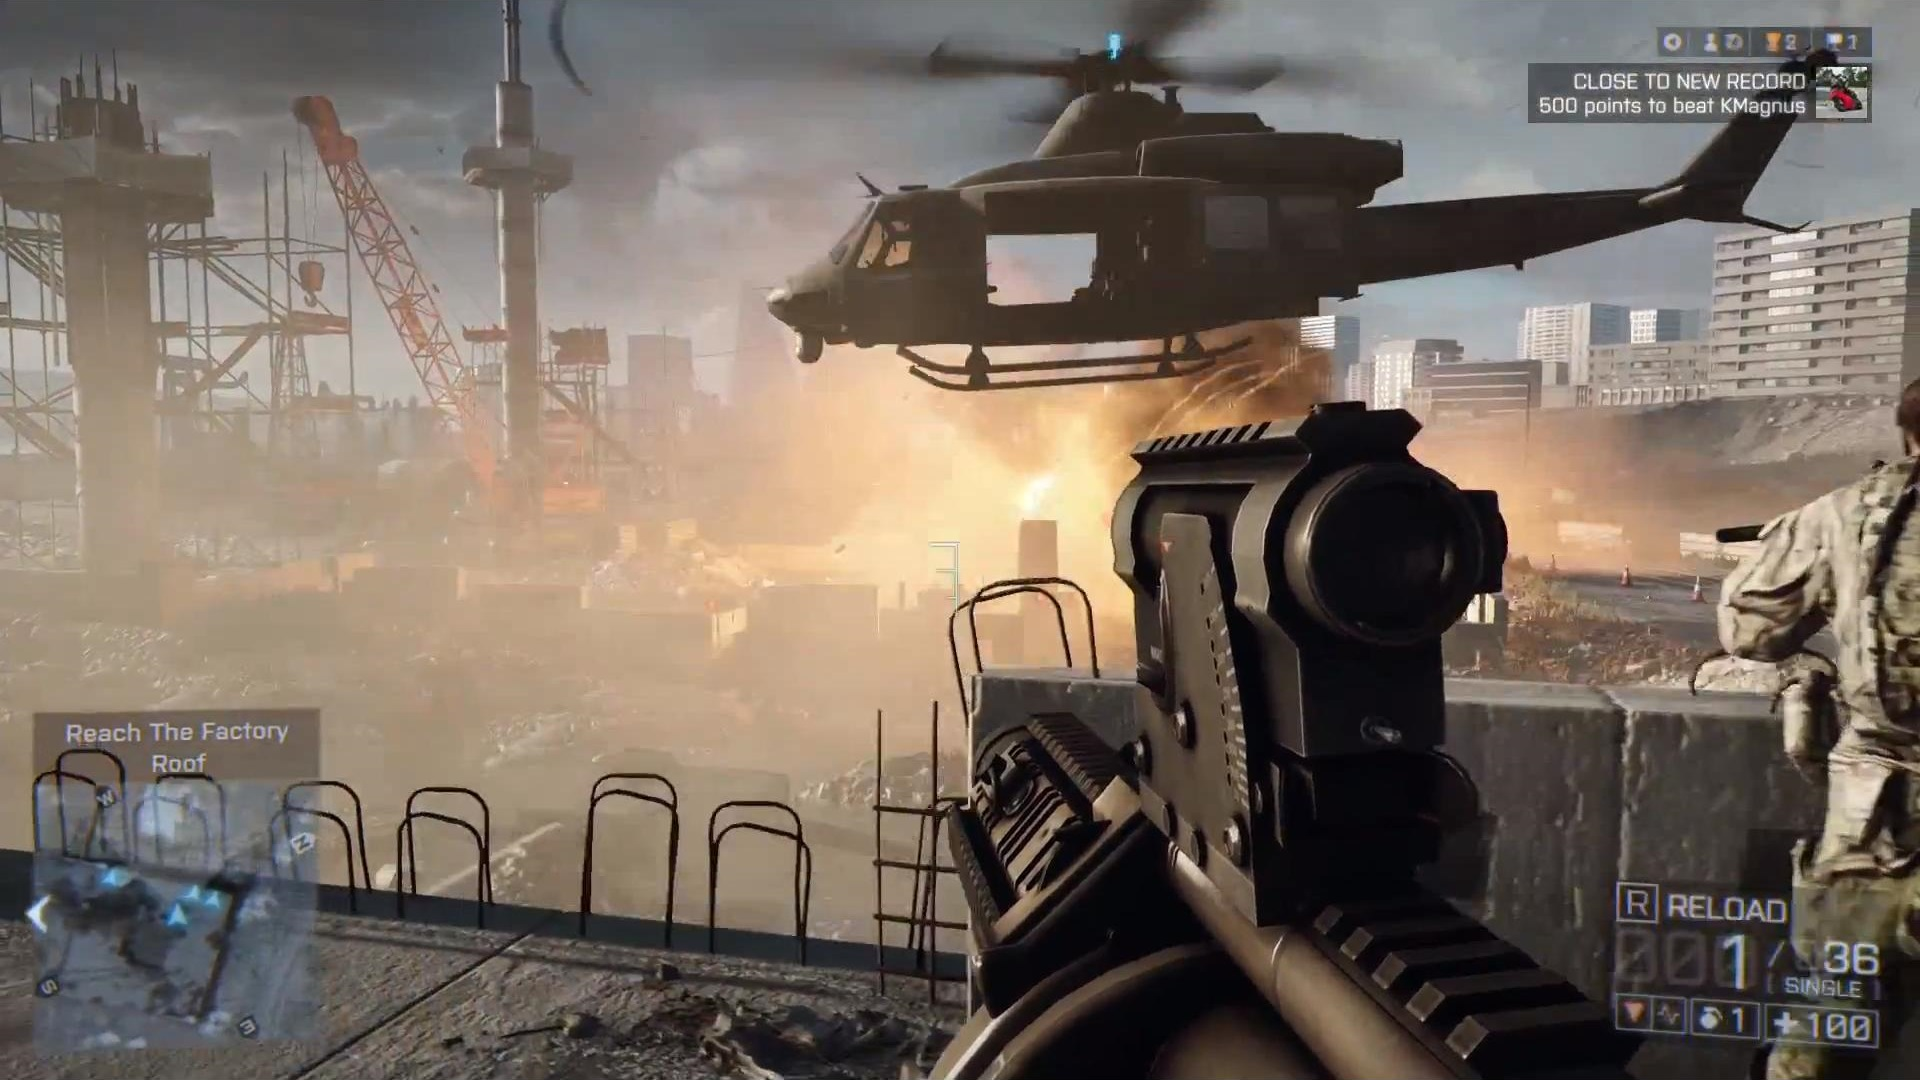 Battlefield 4 - Region Free Origin Key